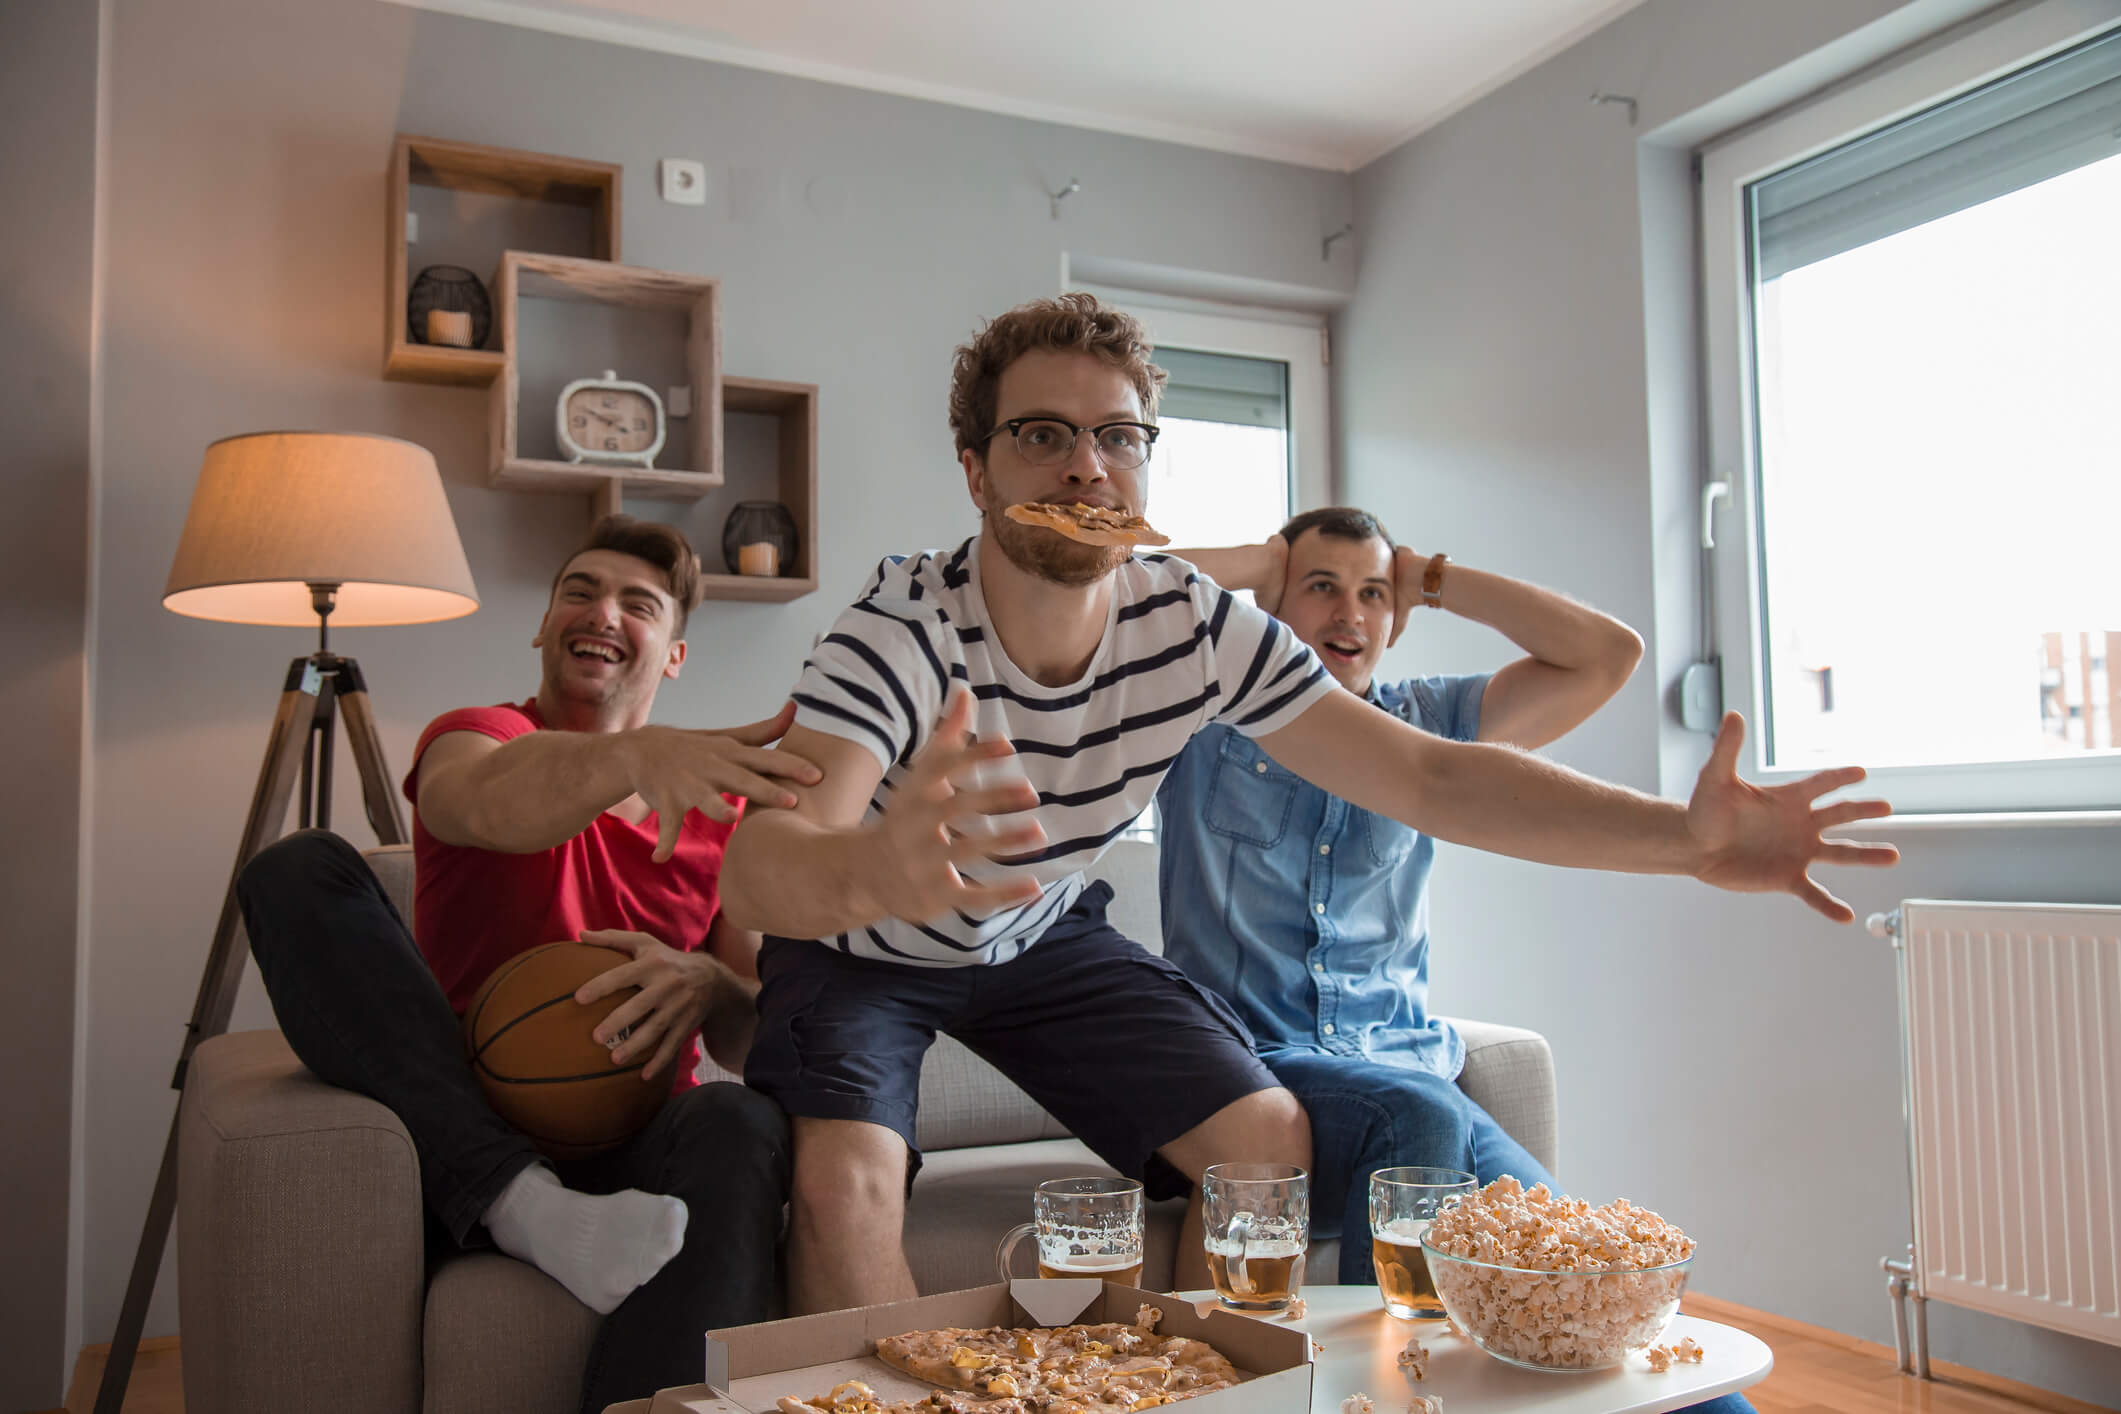 Group of friends watching basketball in living room while drinking beer and eating pizza and popcorn